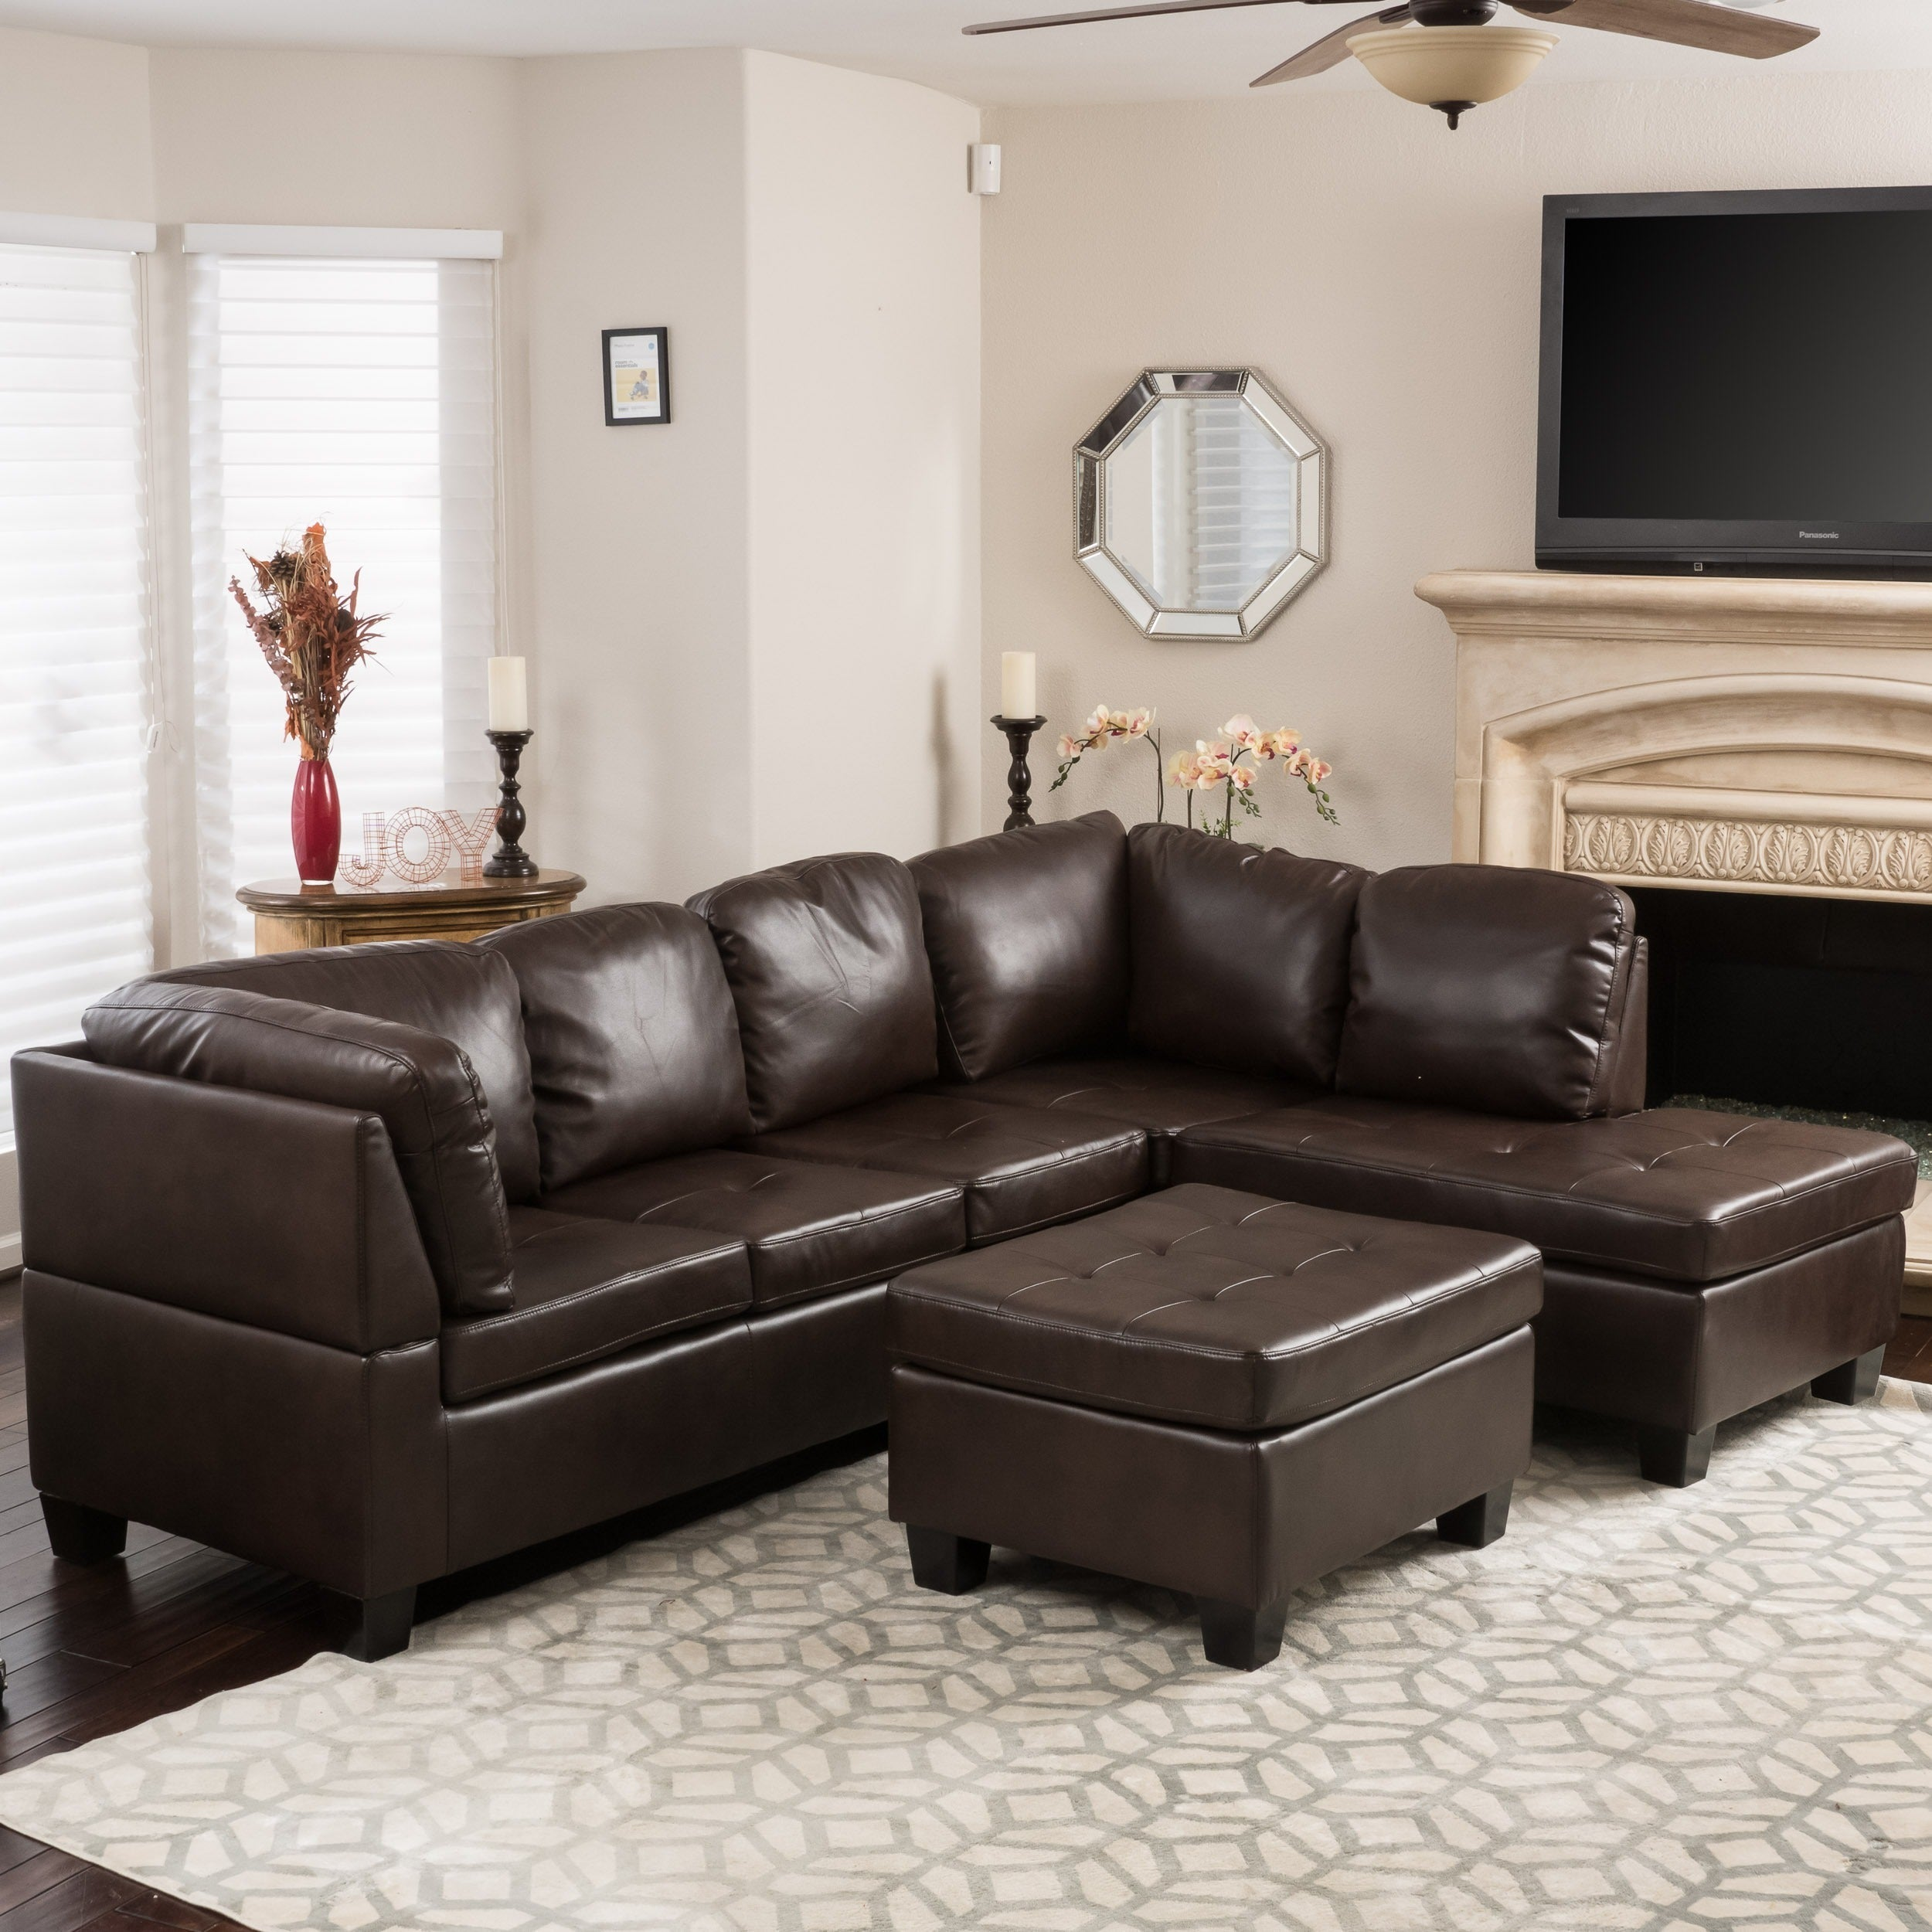 Canterbury 3-piece PU Leather Sectional Sofa Set by Christopher Knight Home